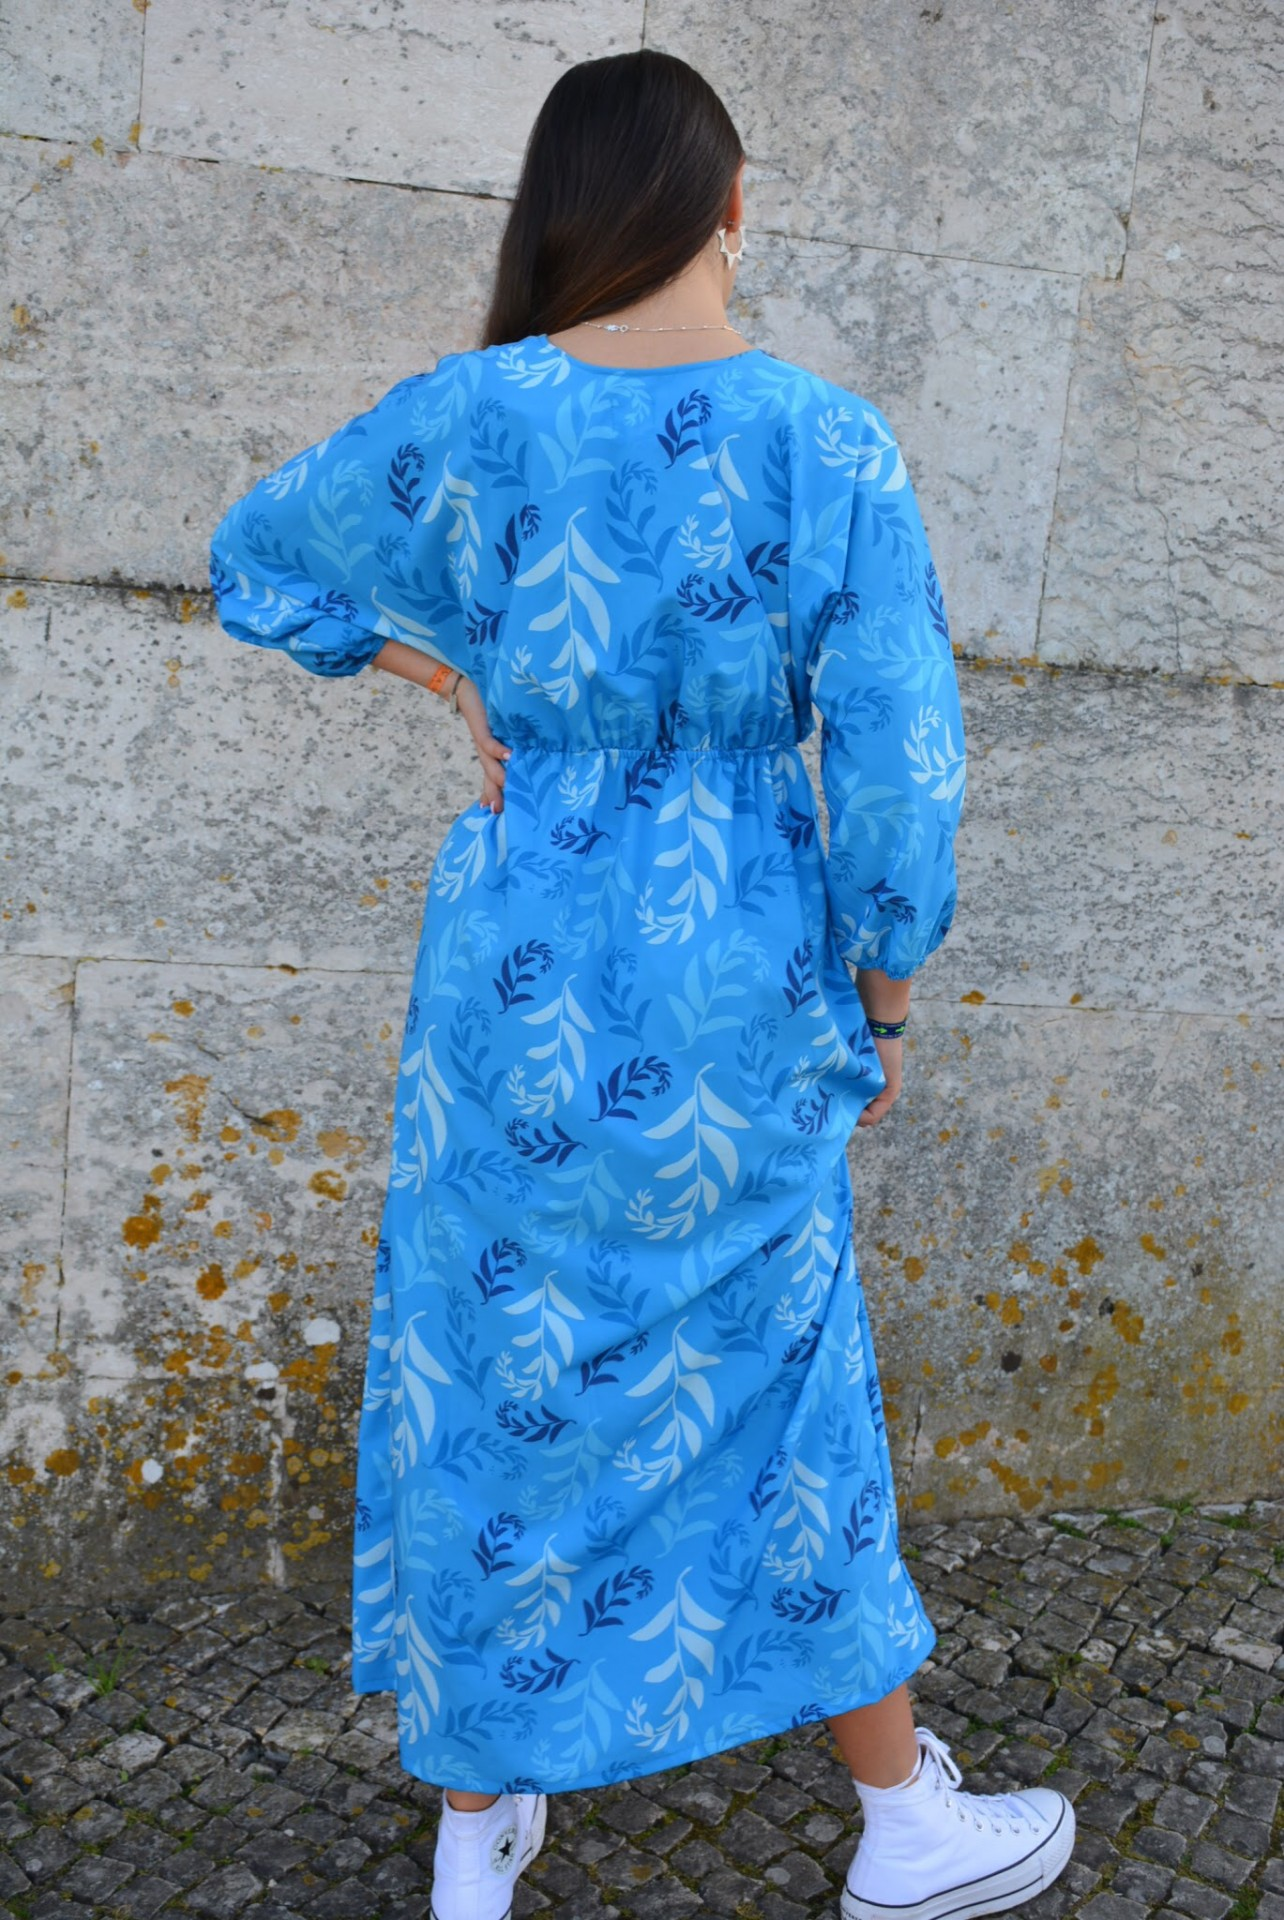 Vestido/Dress  BORACAY azul/blue